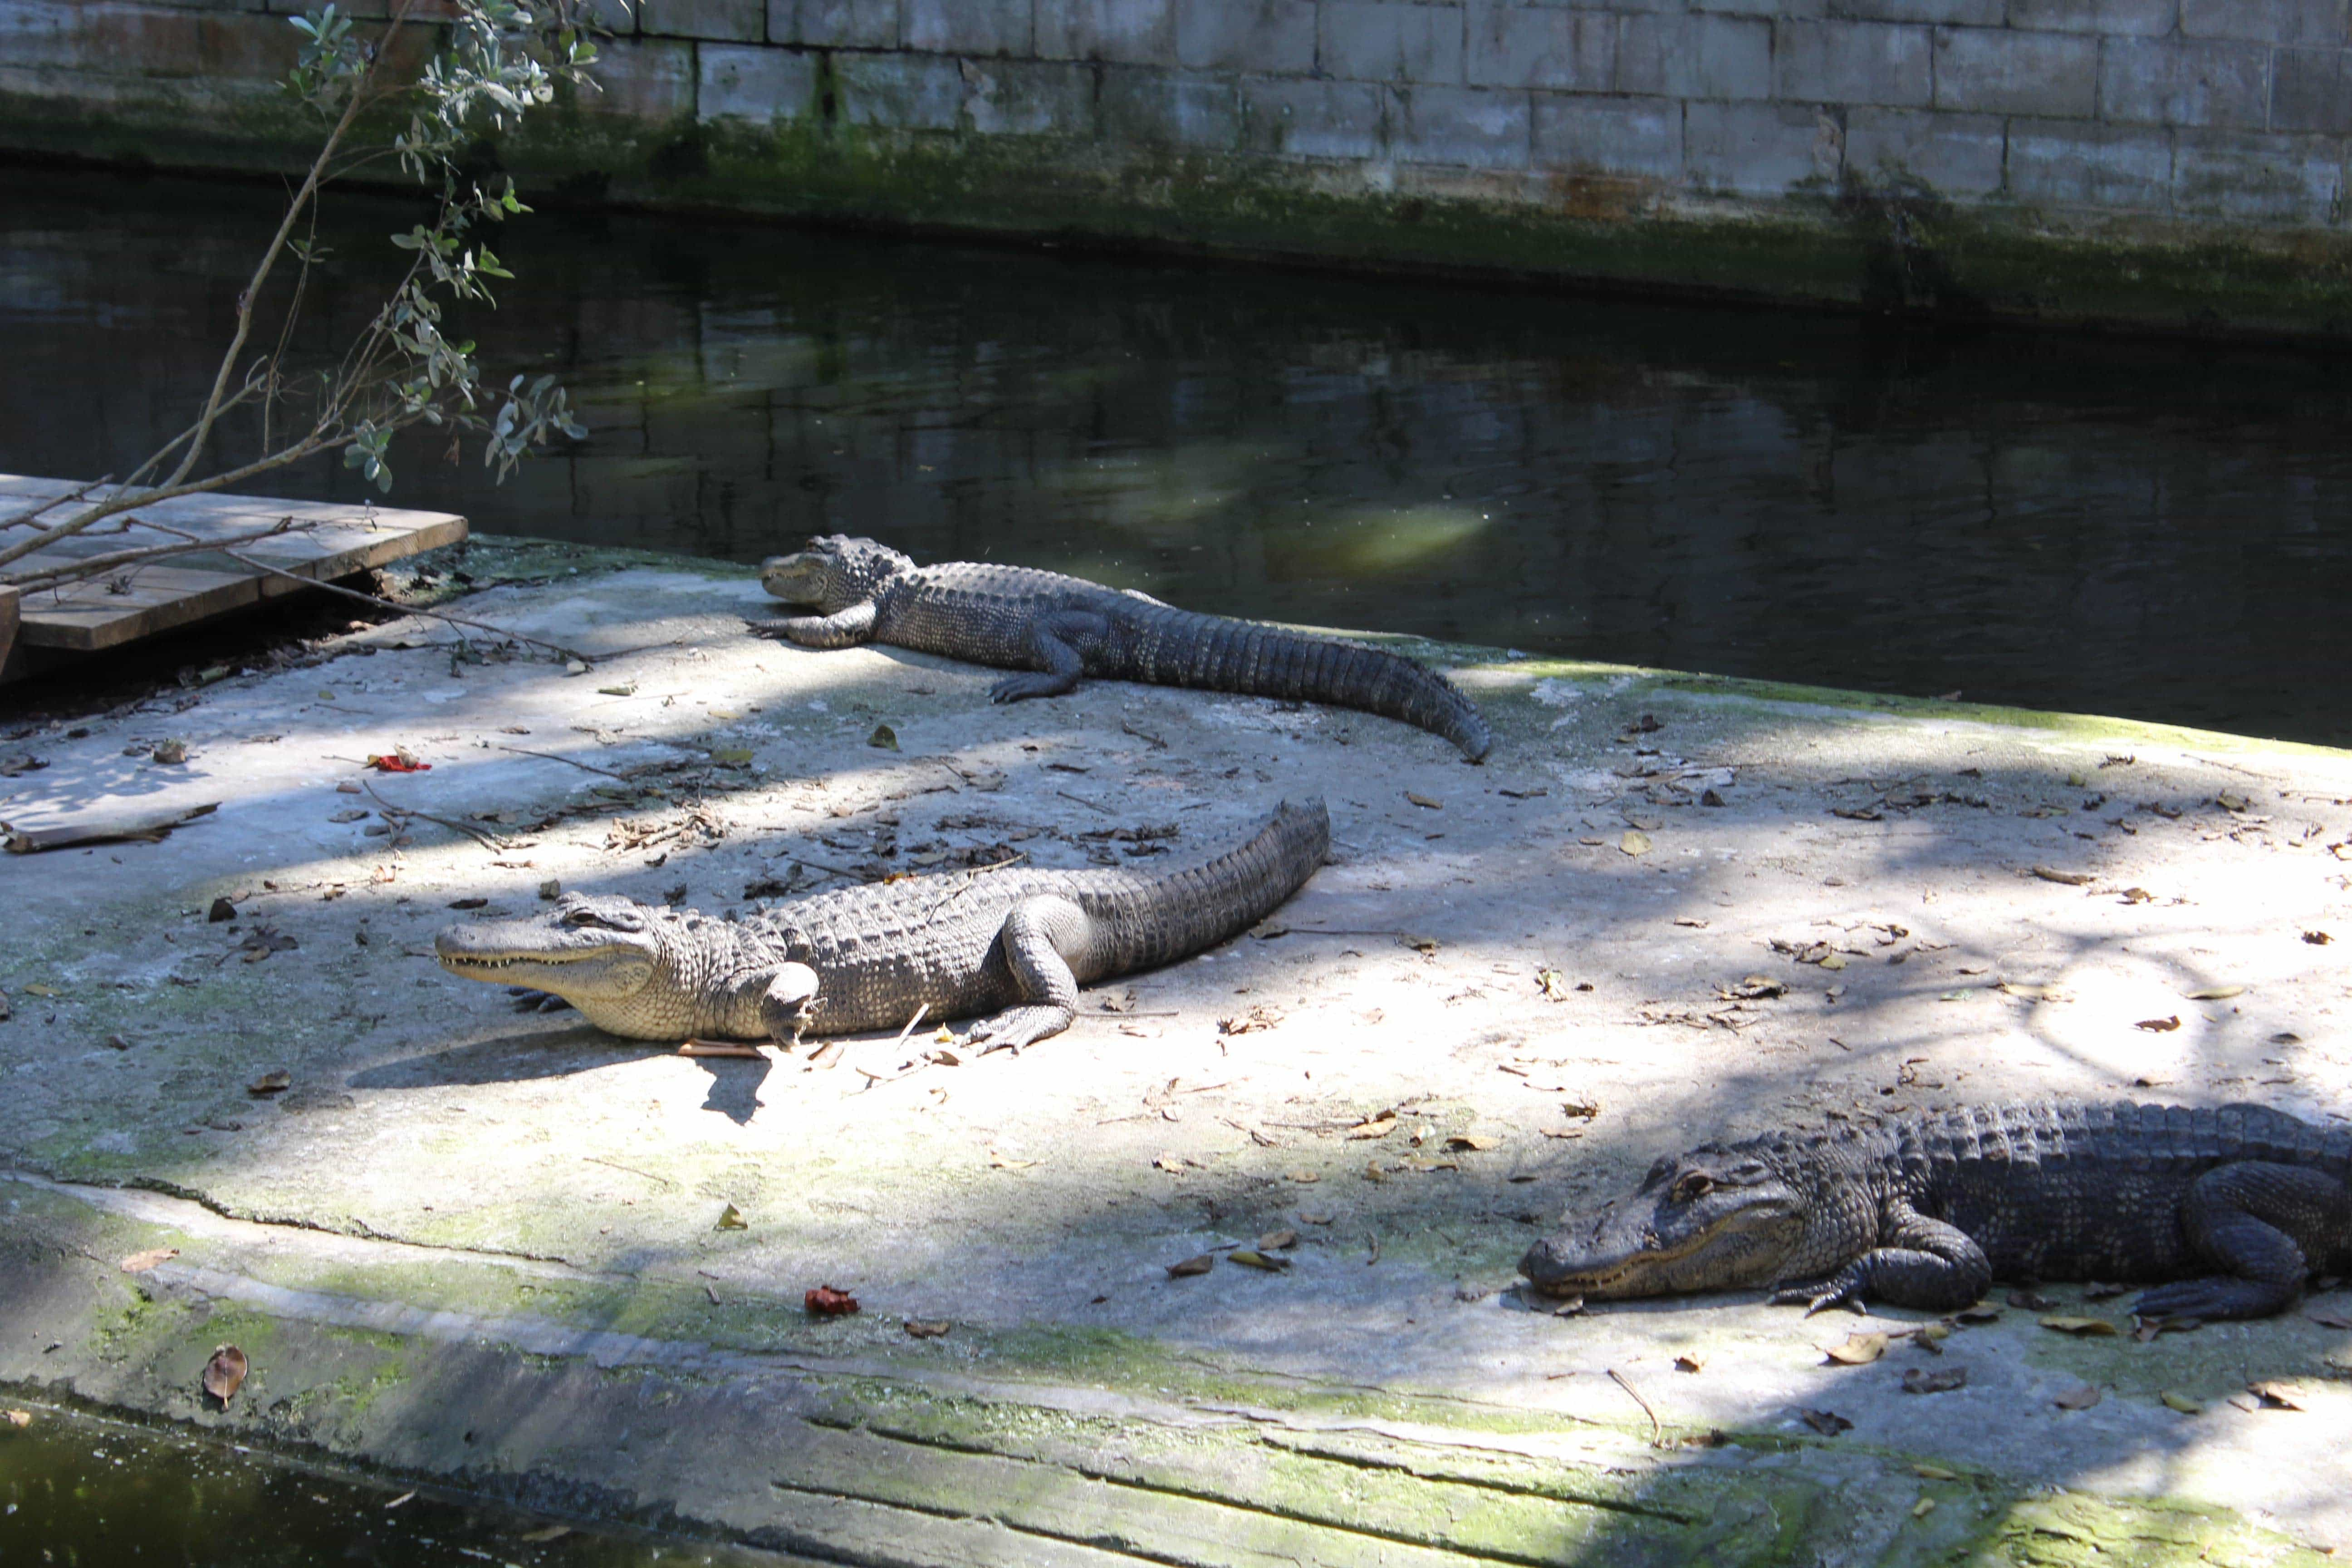 Rescued Gators find a new home